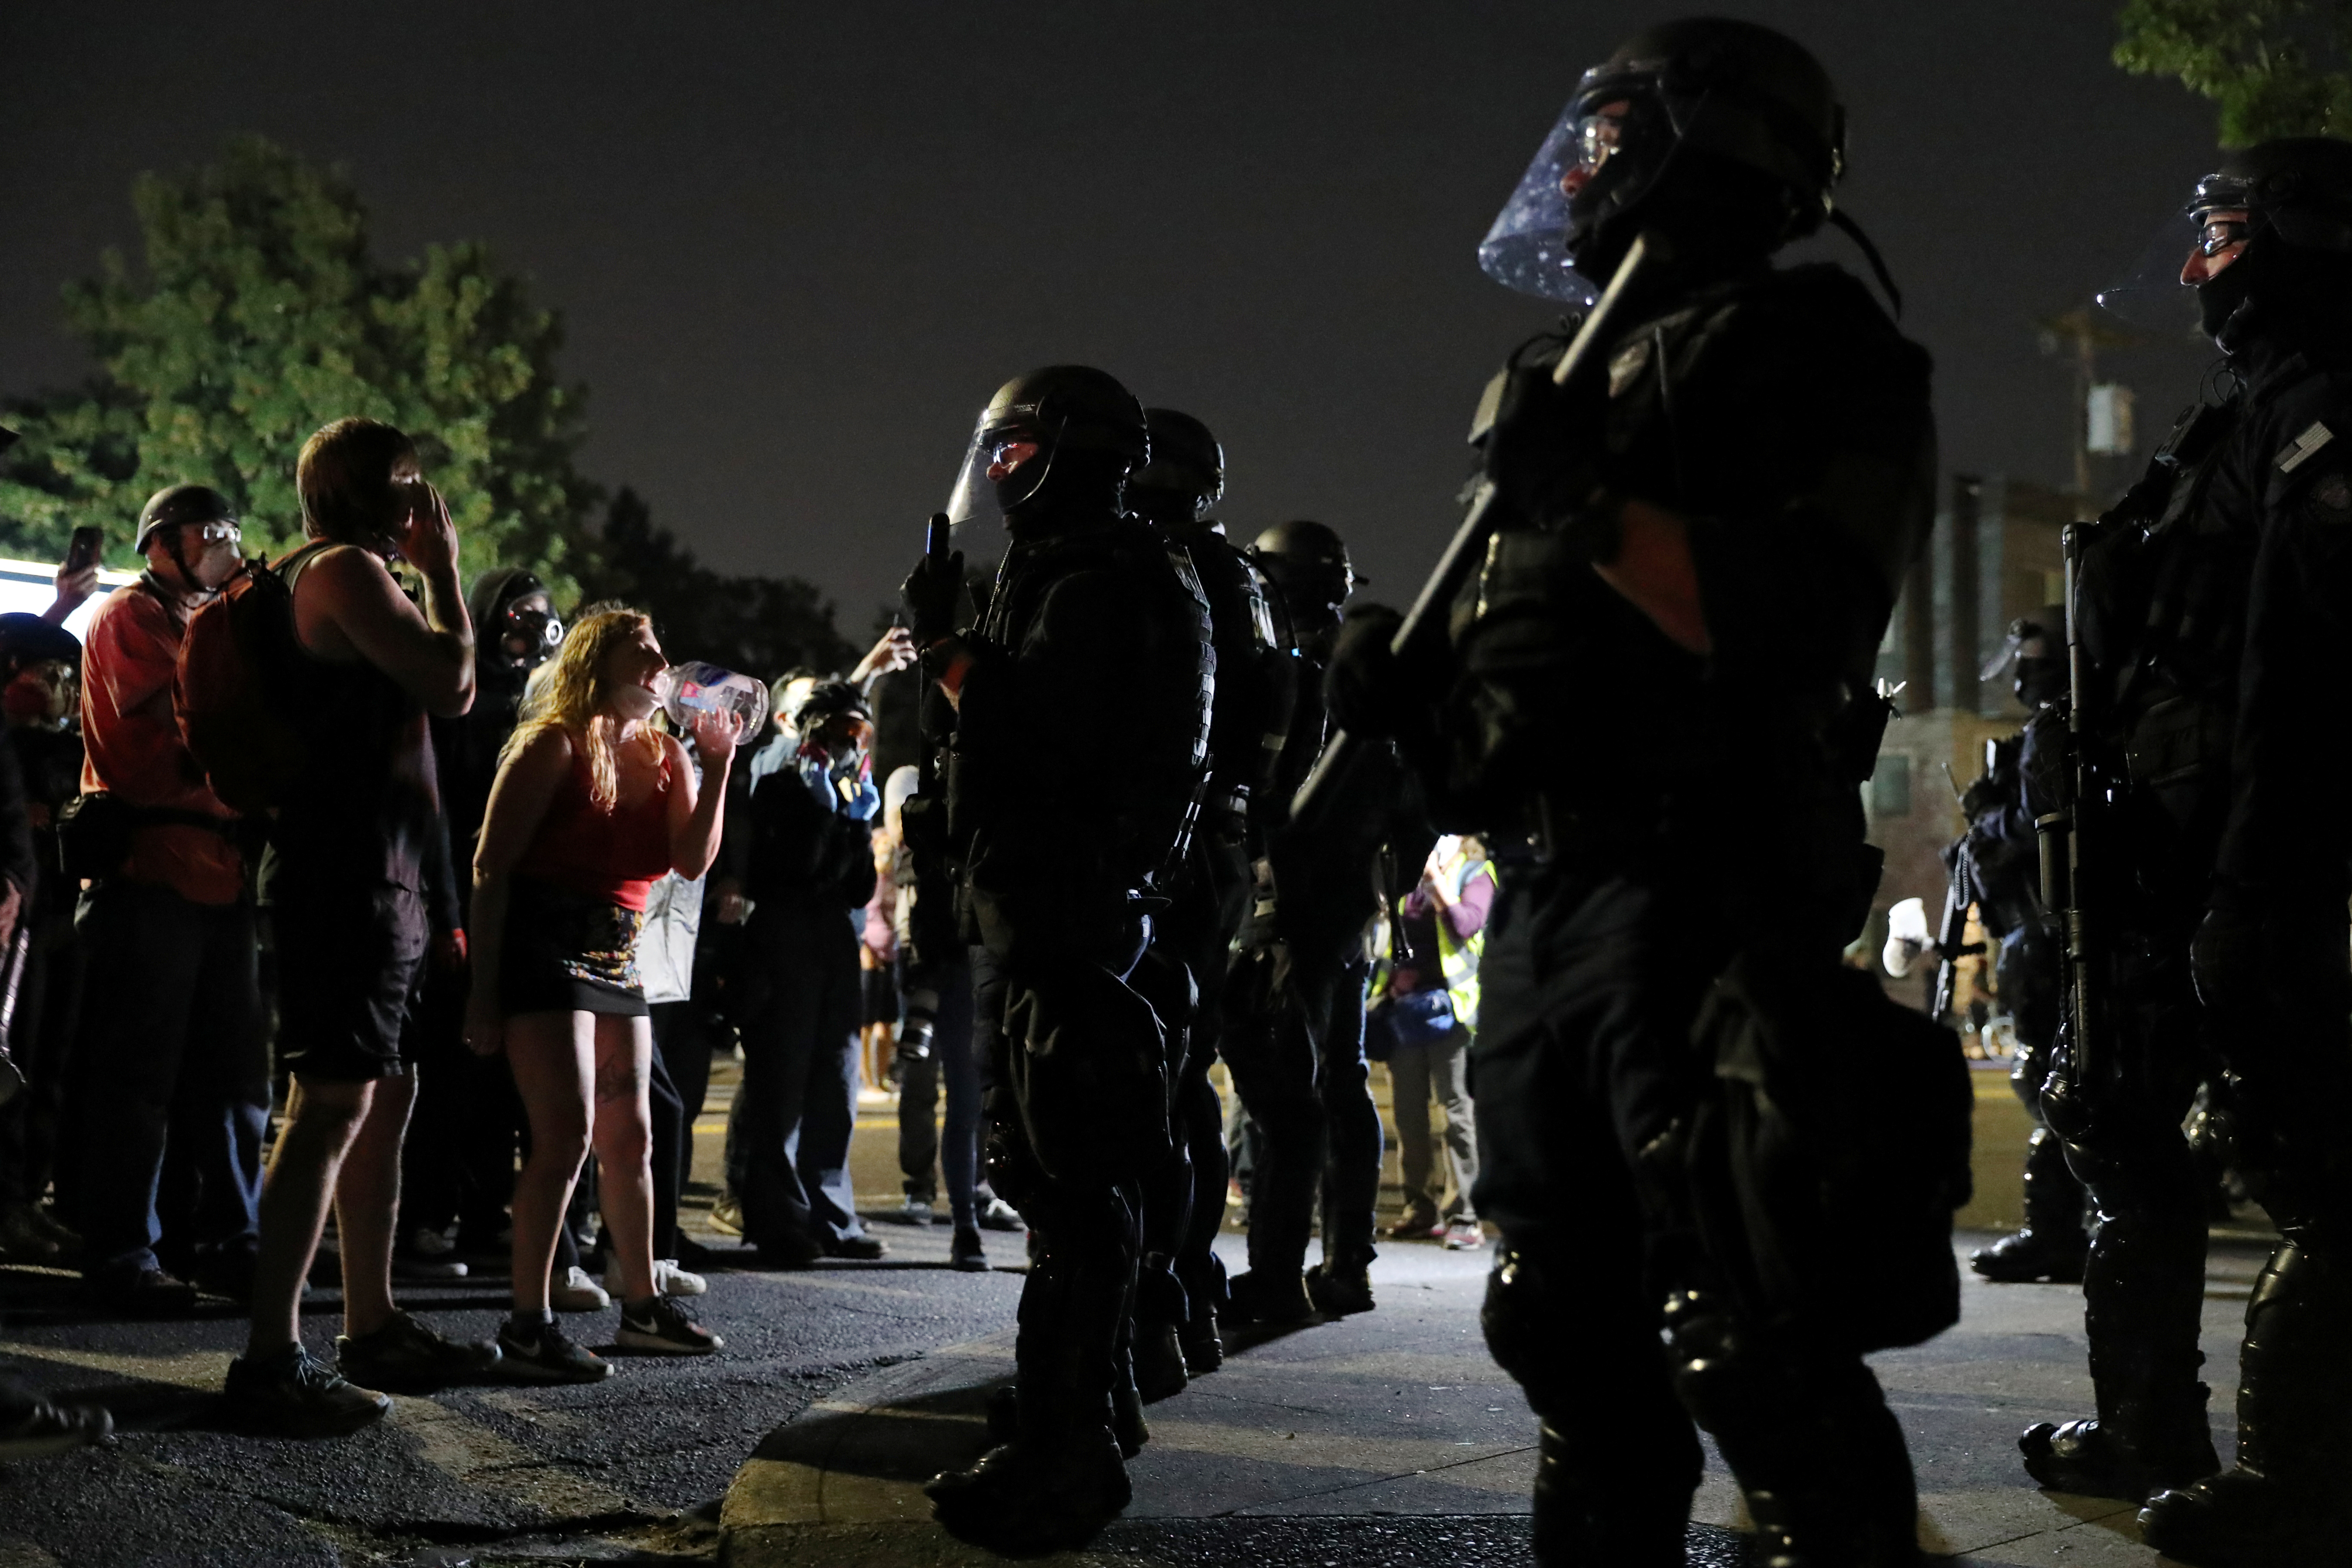 Protesters face off against Portland police officers as they demonstrate against police violence and systemic inequality for the 99th consecutive night in Portland, Oregon, U.S. September 4, 2020. REUTERS/Caitlin Ochs